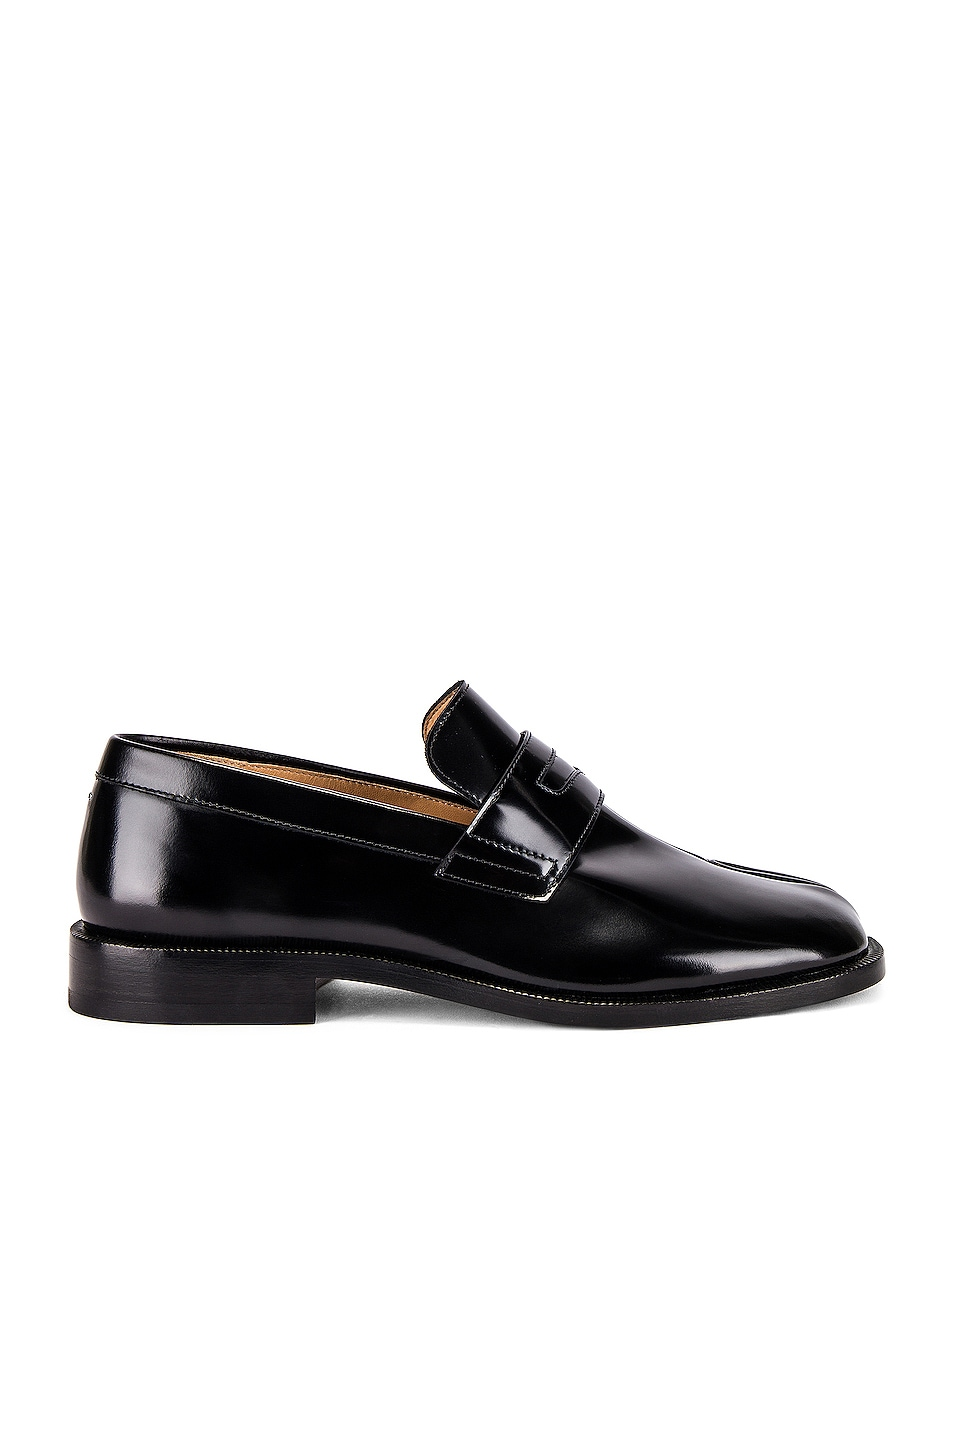 Image 2 of Maison Margiela Tabi Advocate Loafer in Black